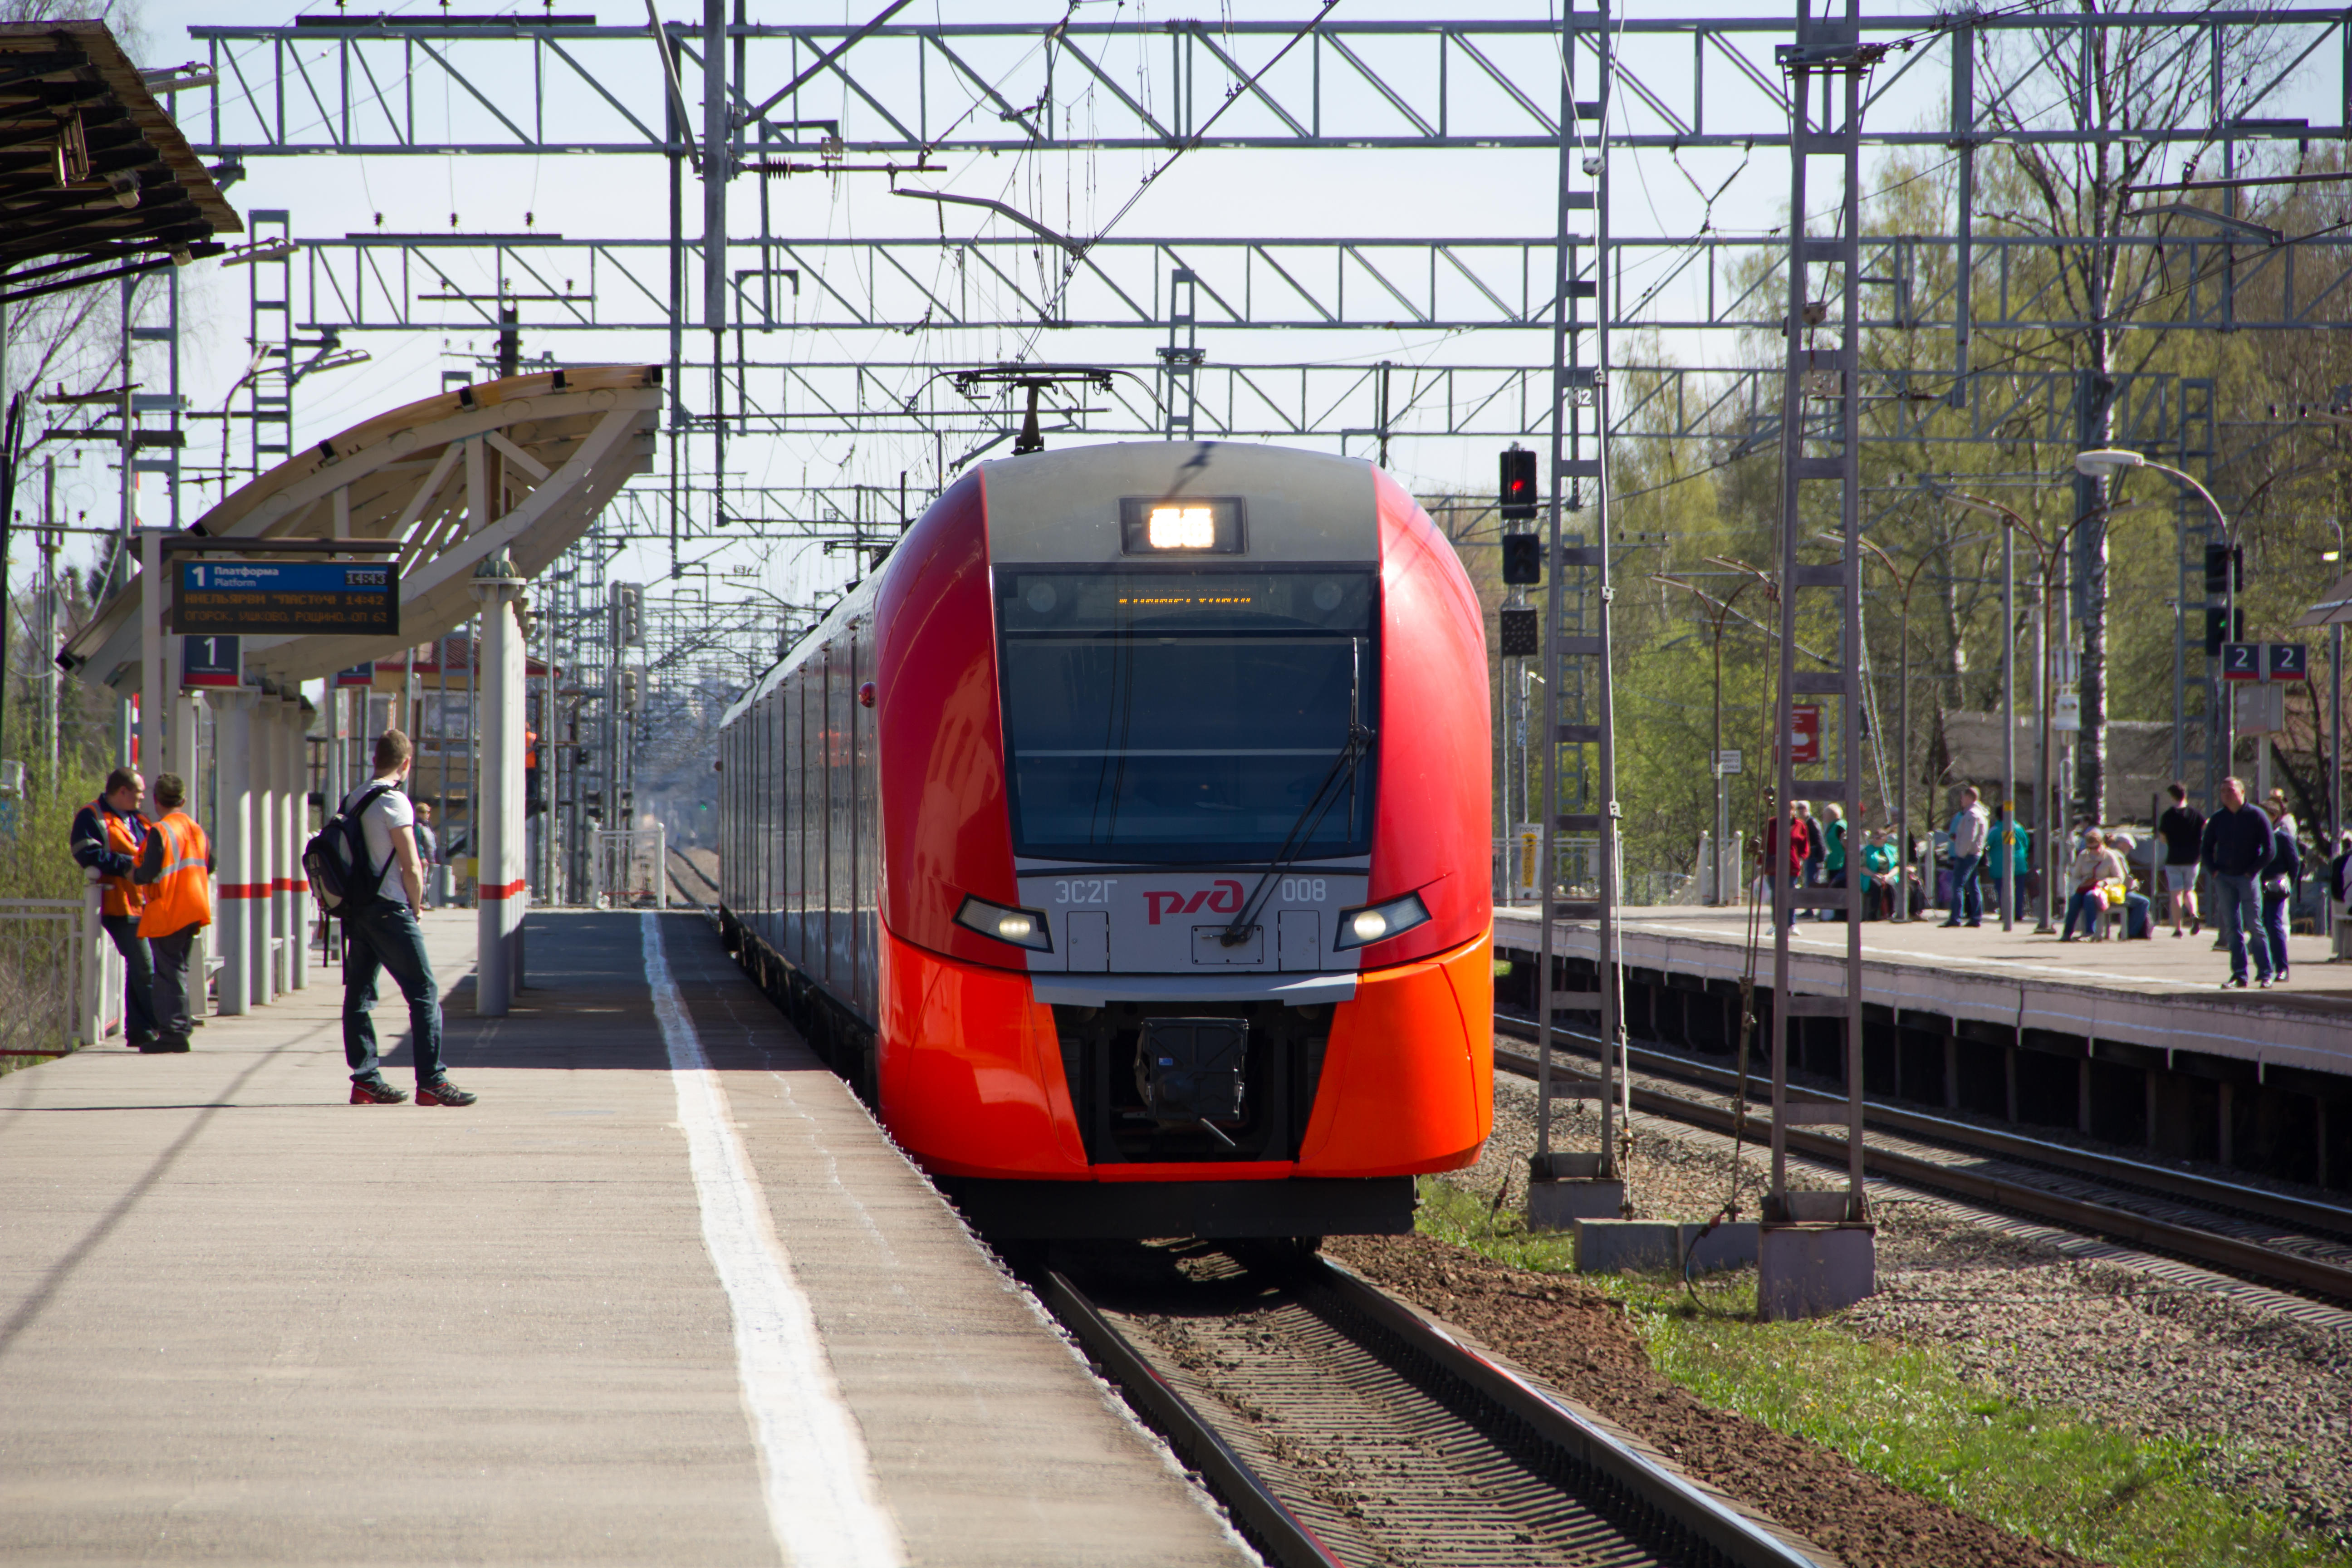 Swallow on the platform Pargolovo. Russian railway. Russia, St. Petersburg, May 8, 2018